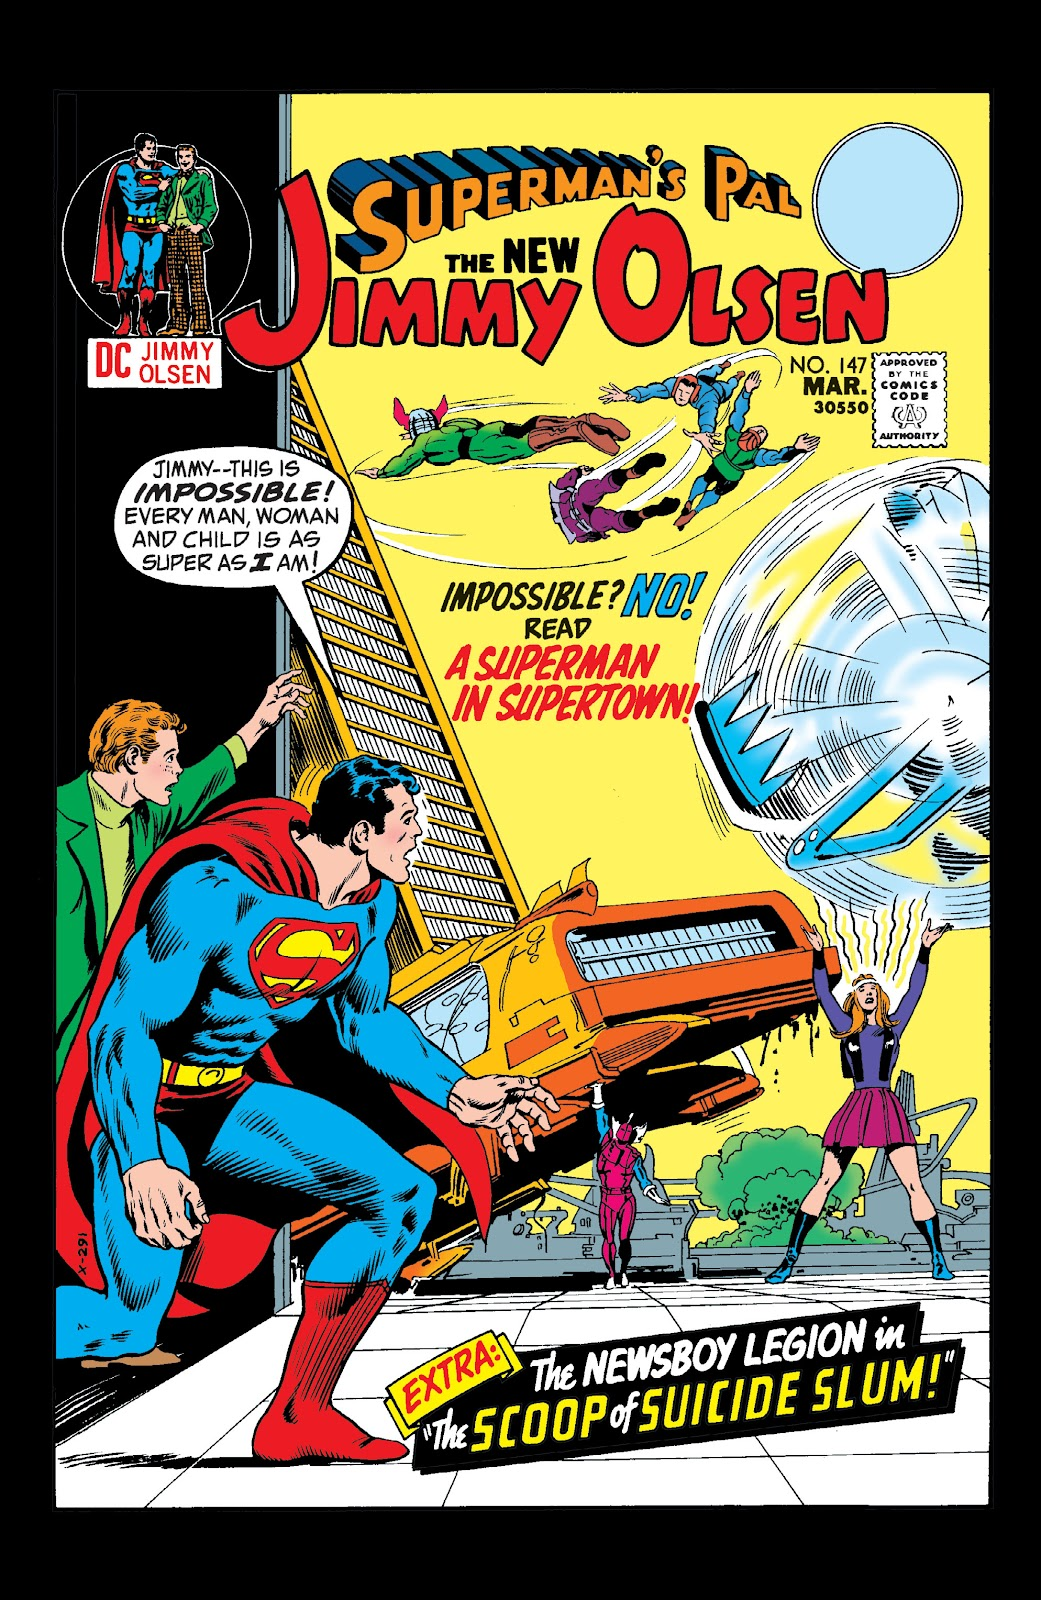 Read online Superman's Pal, Jimmy Olsen by Jack Kirby comic -  Issue # TPB (Part 4) - 12